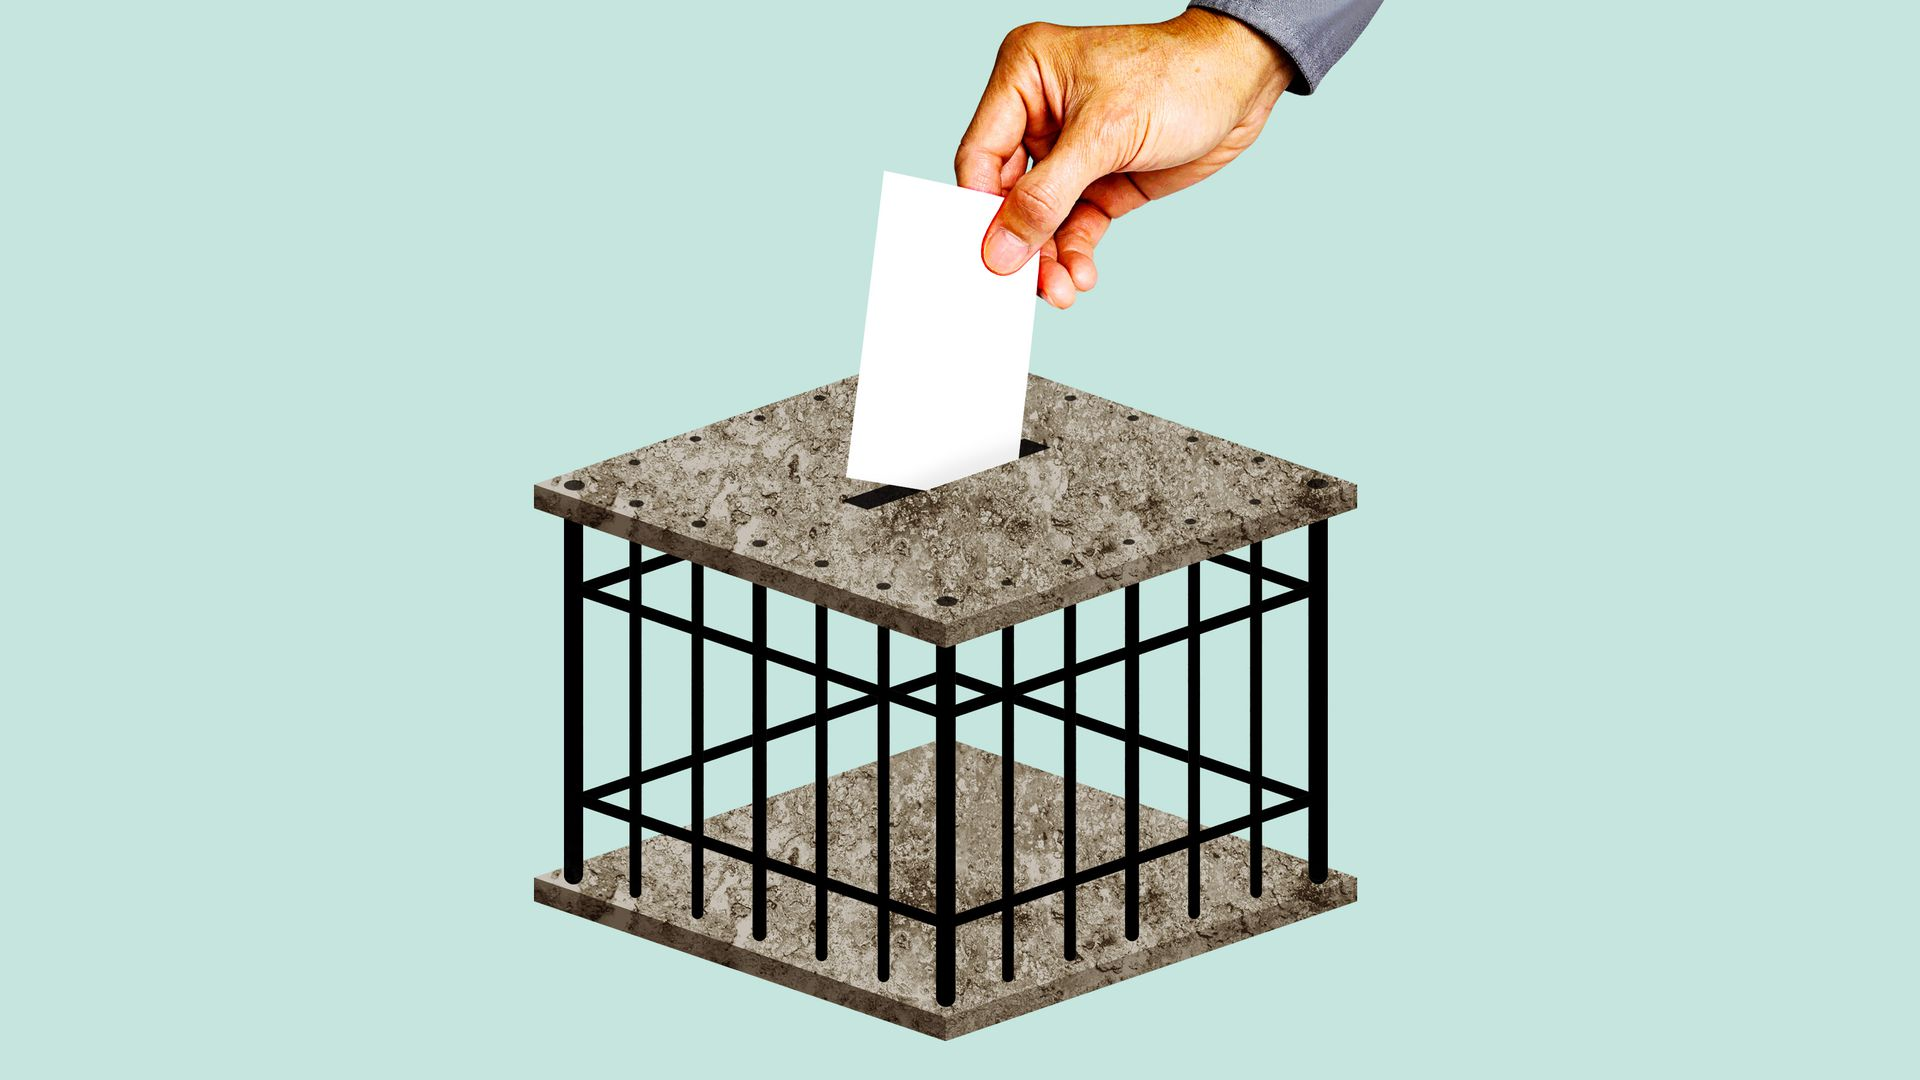 An illustration of someone cast a ballot into a jail cell.